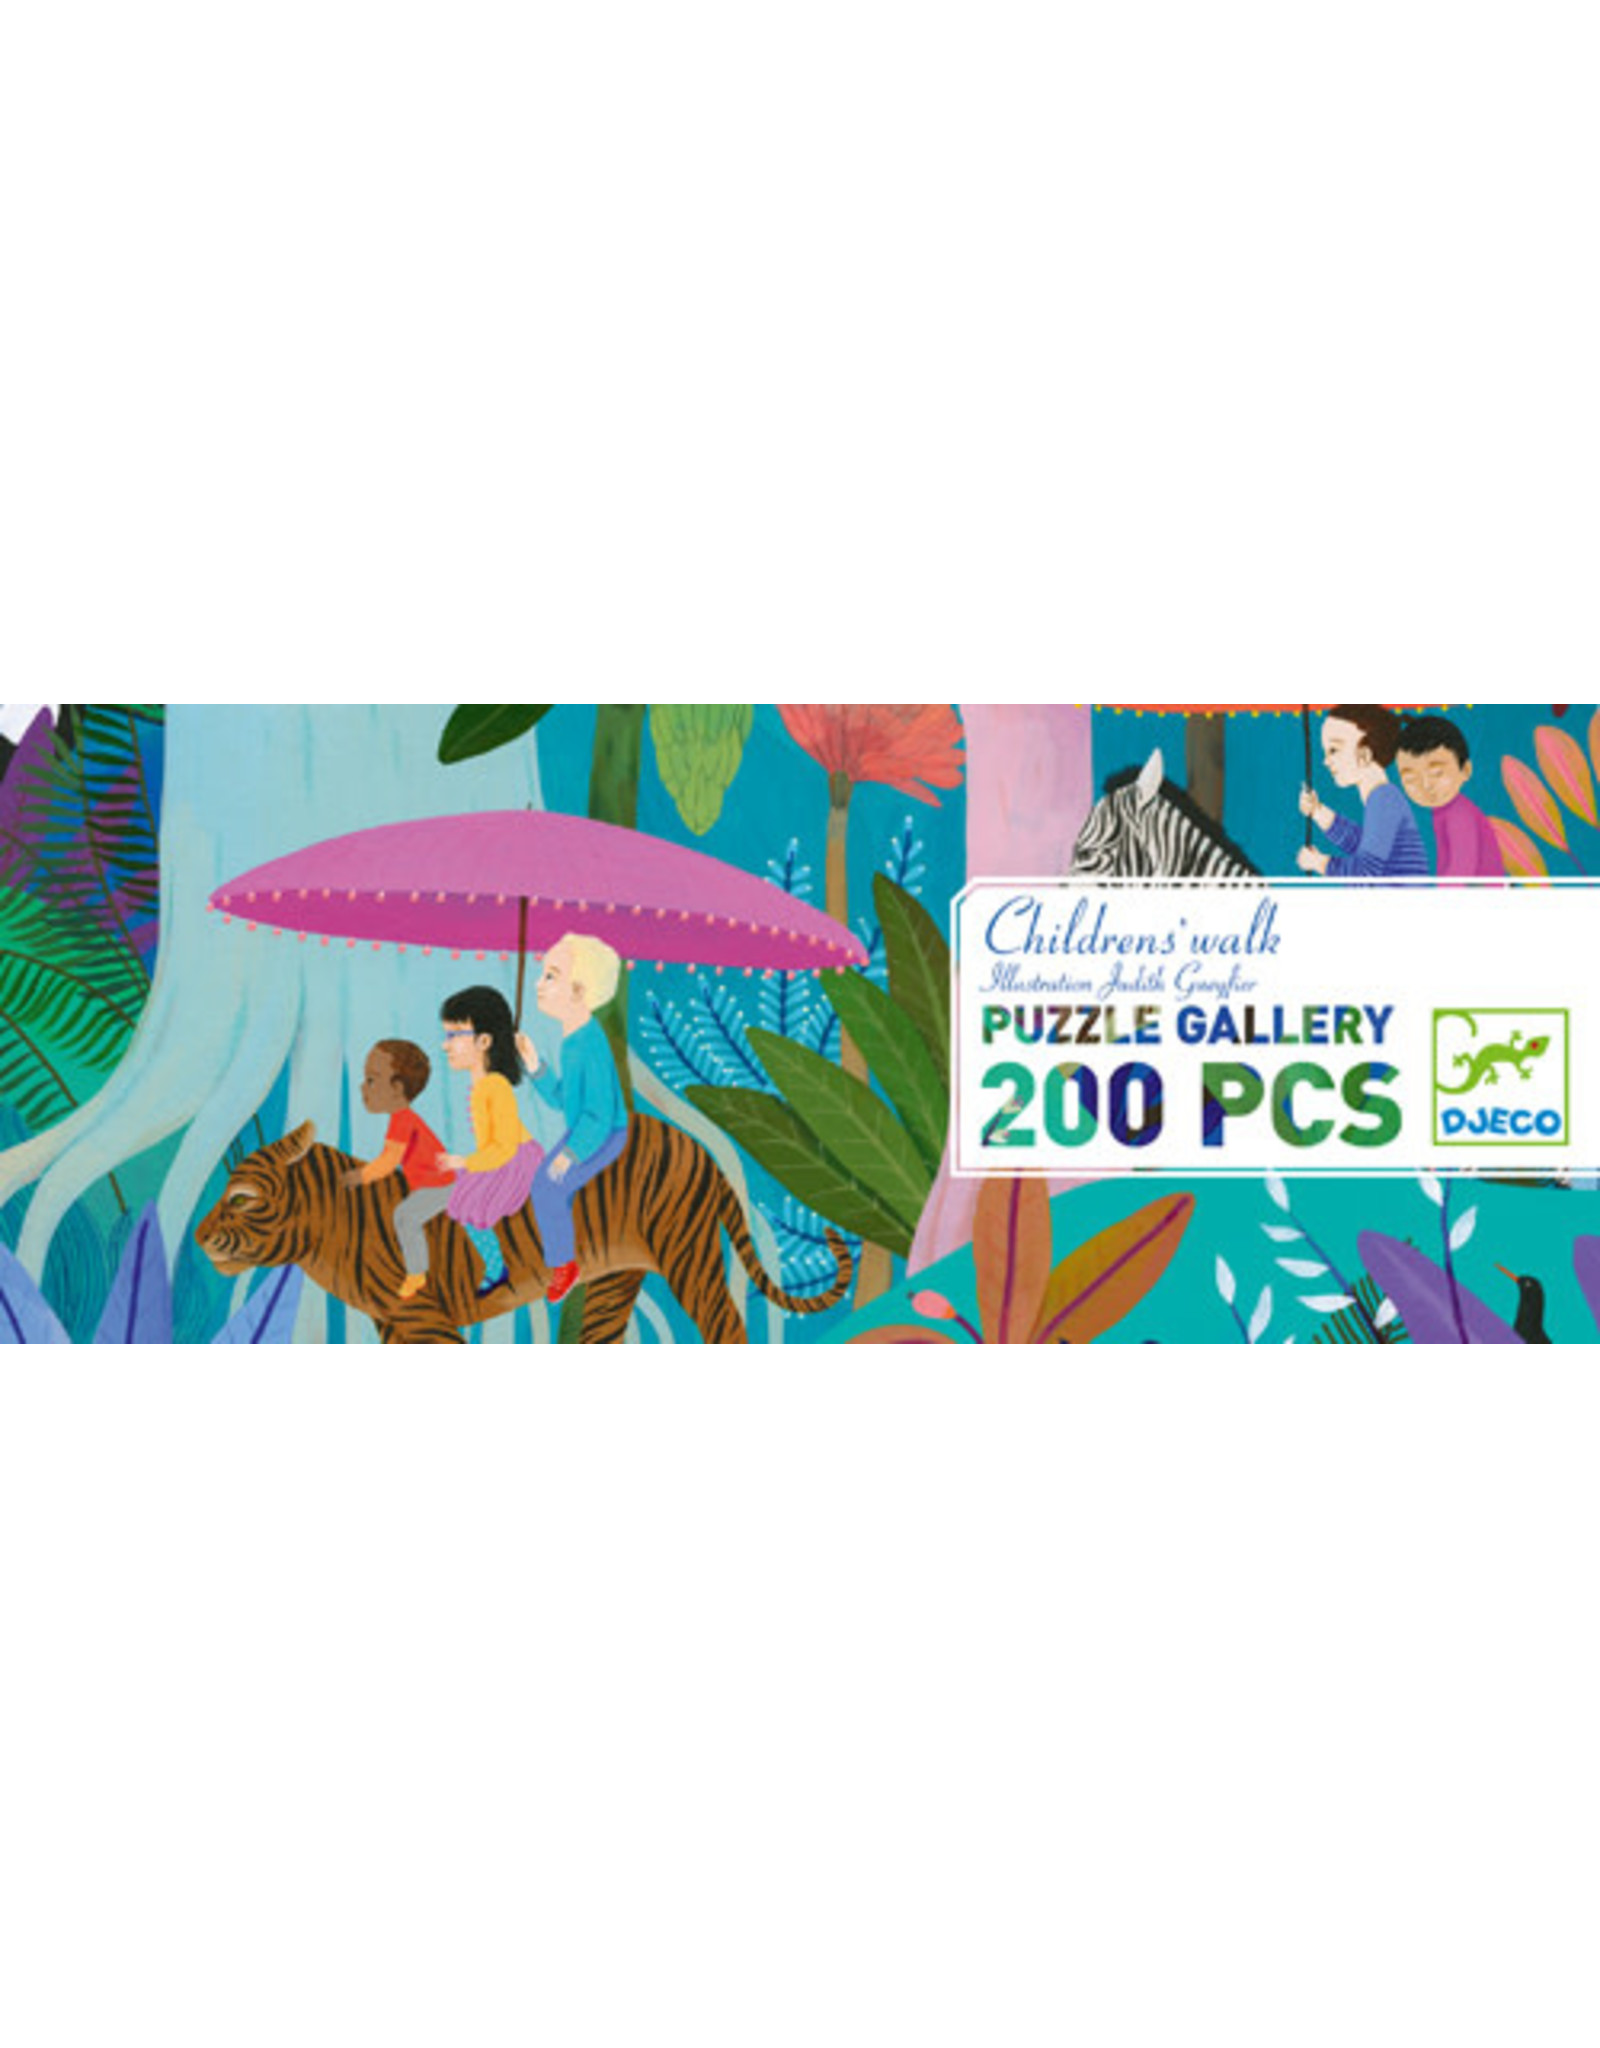 Djeco 200 pcs. Gallery Puzzle, Children's Walk